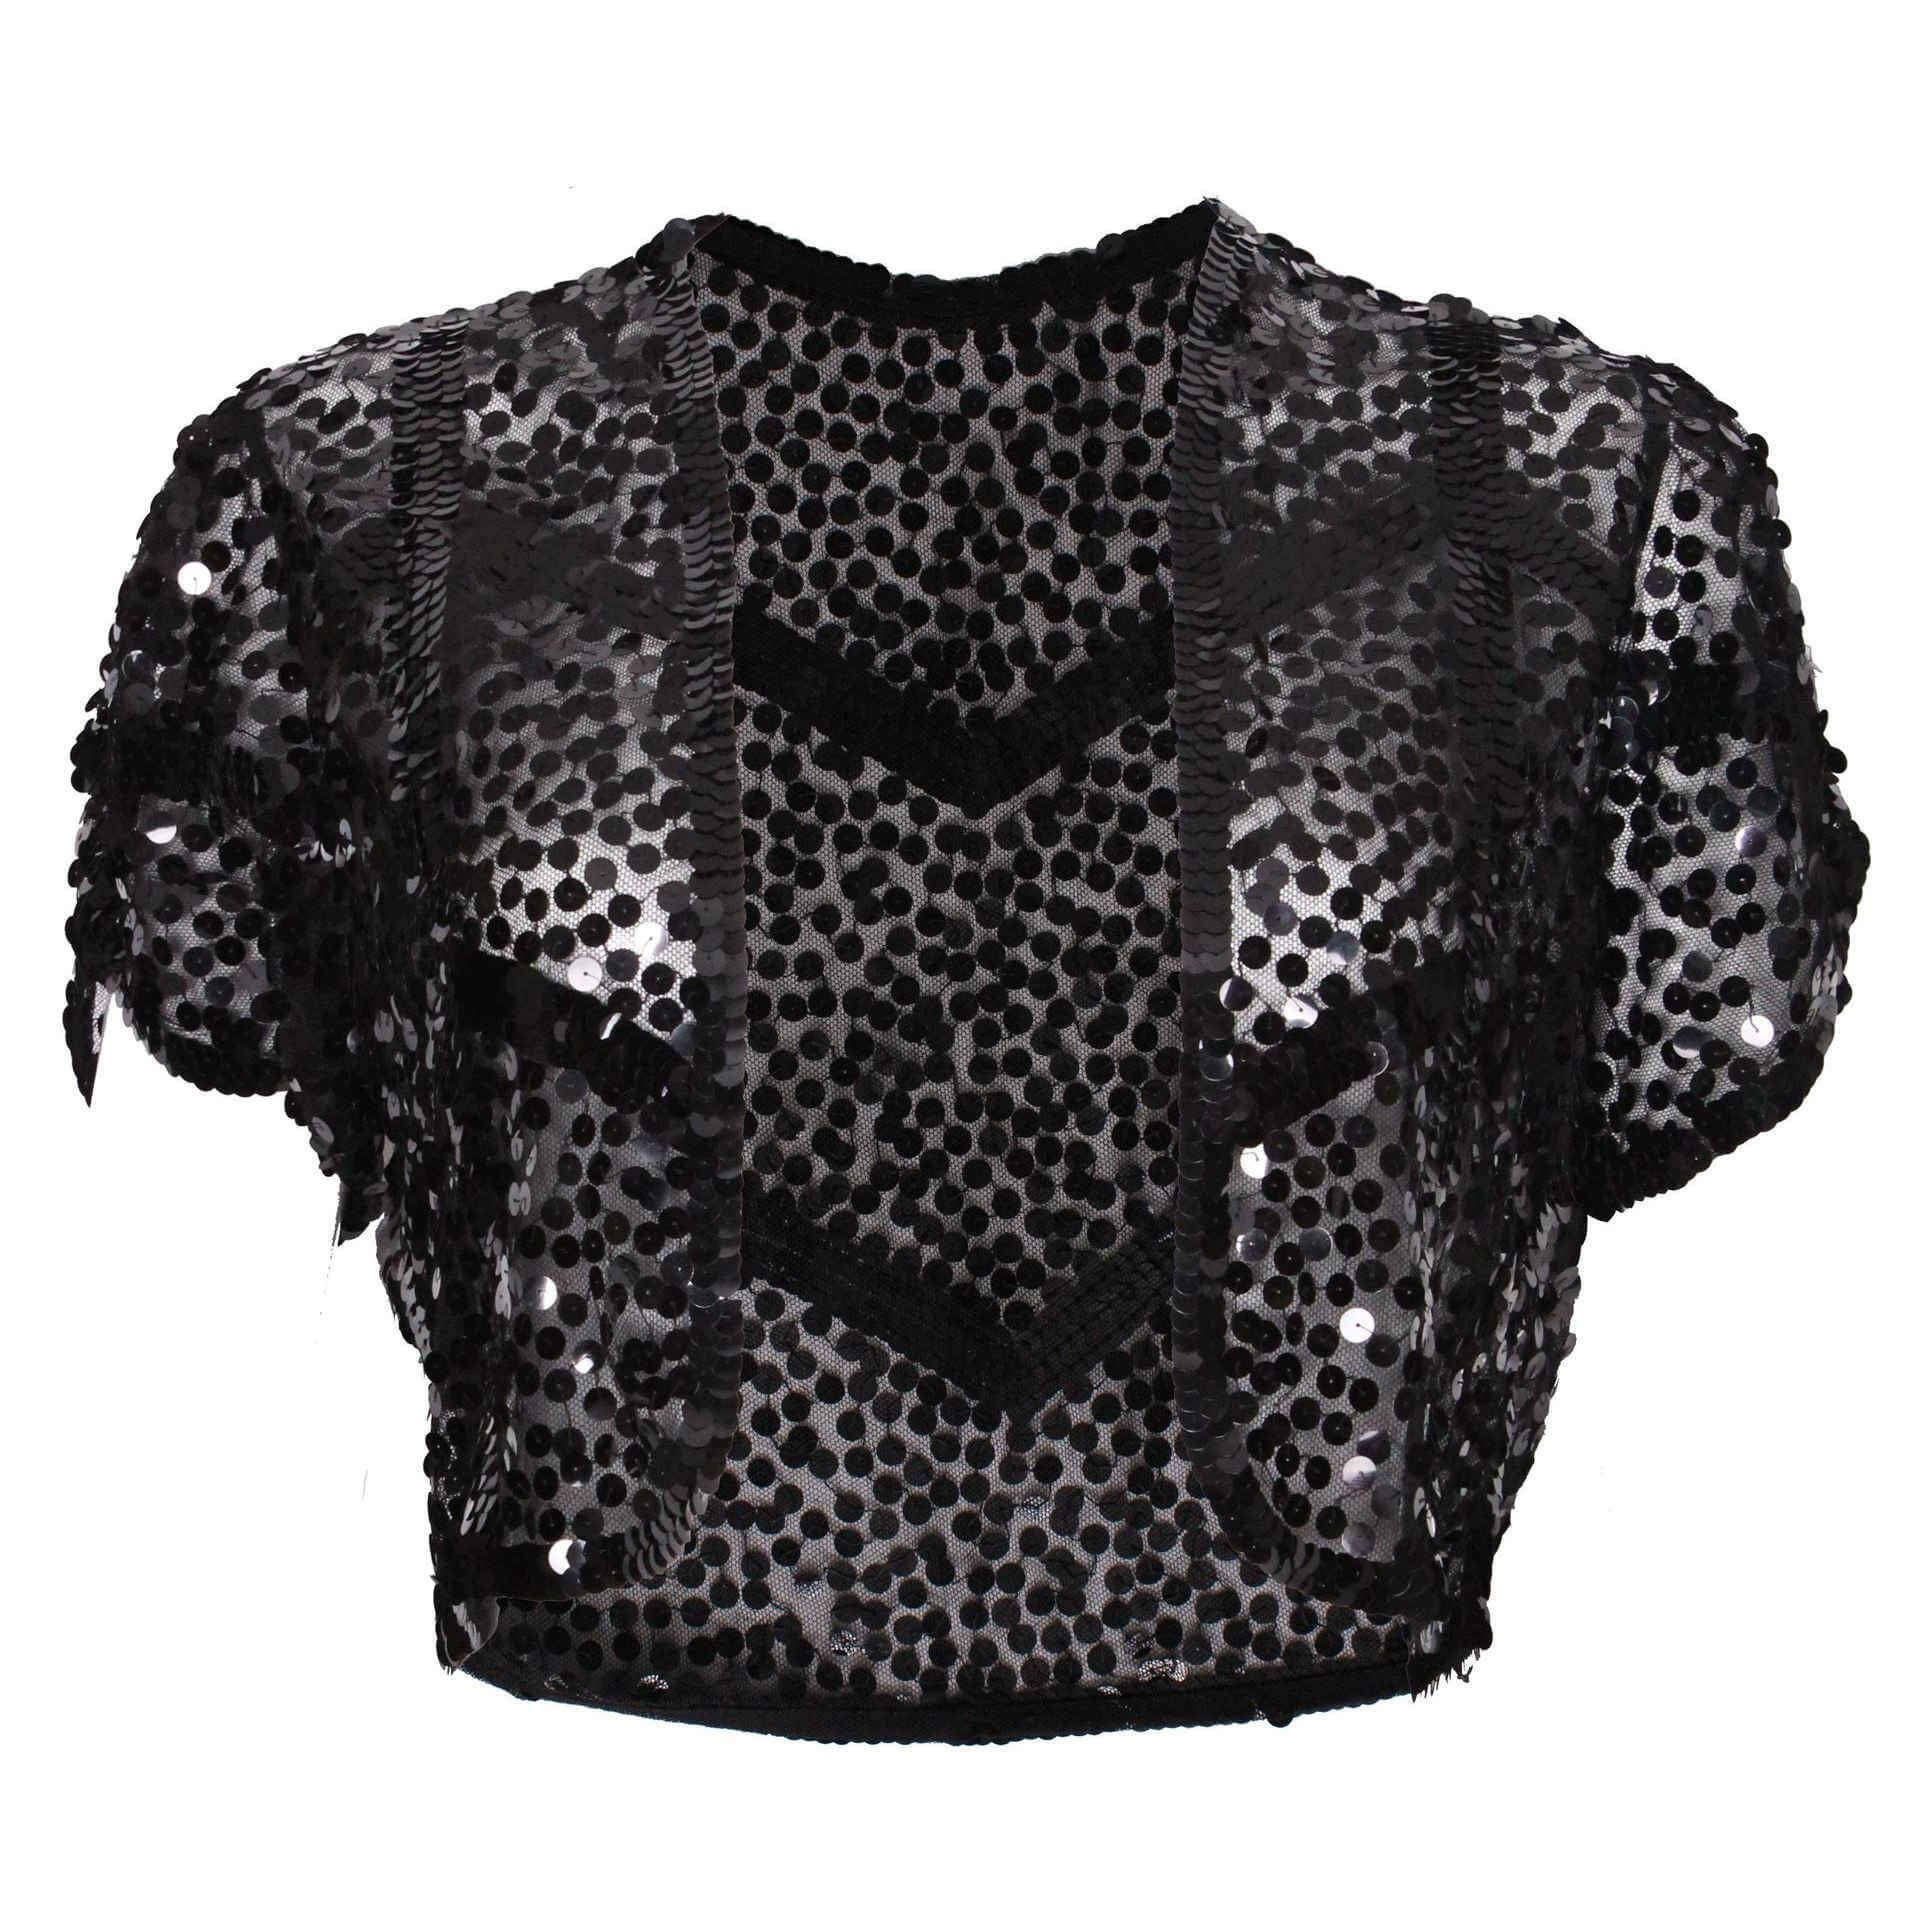 Find great deals on eBay for black sequin shrug. Shop with confidence.